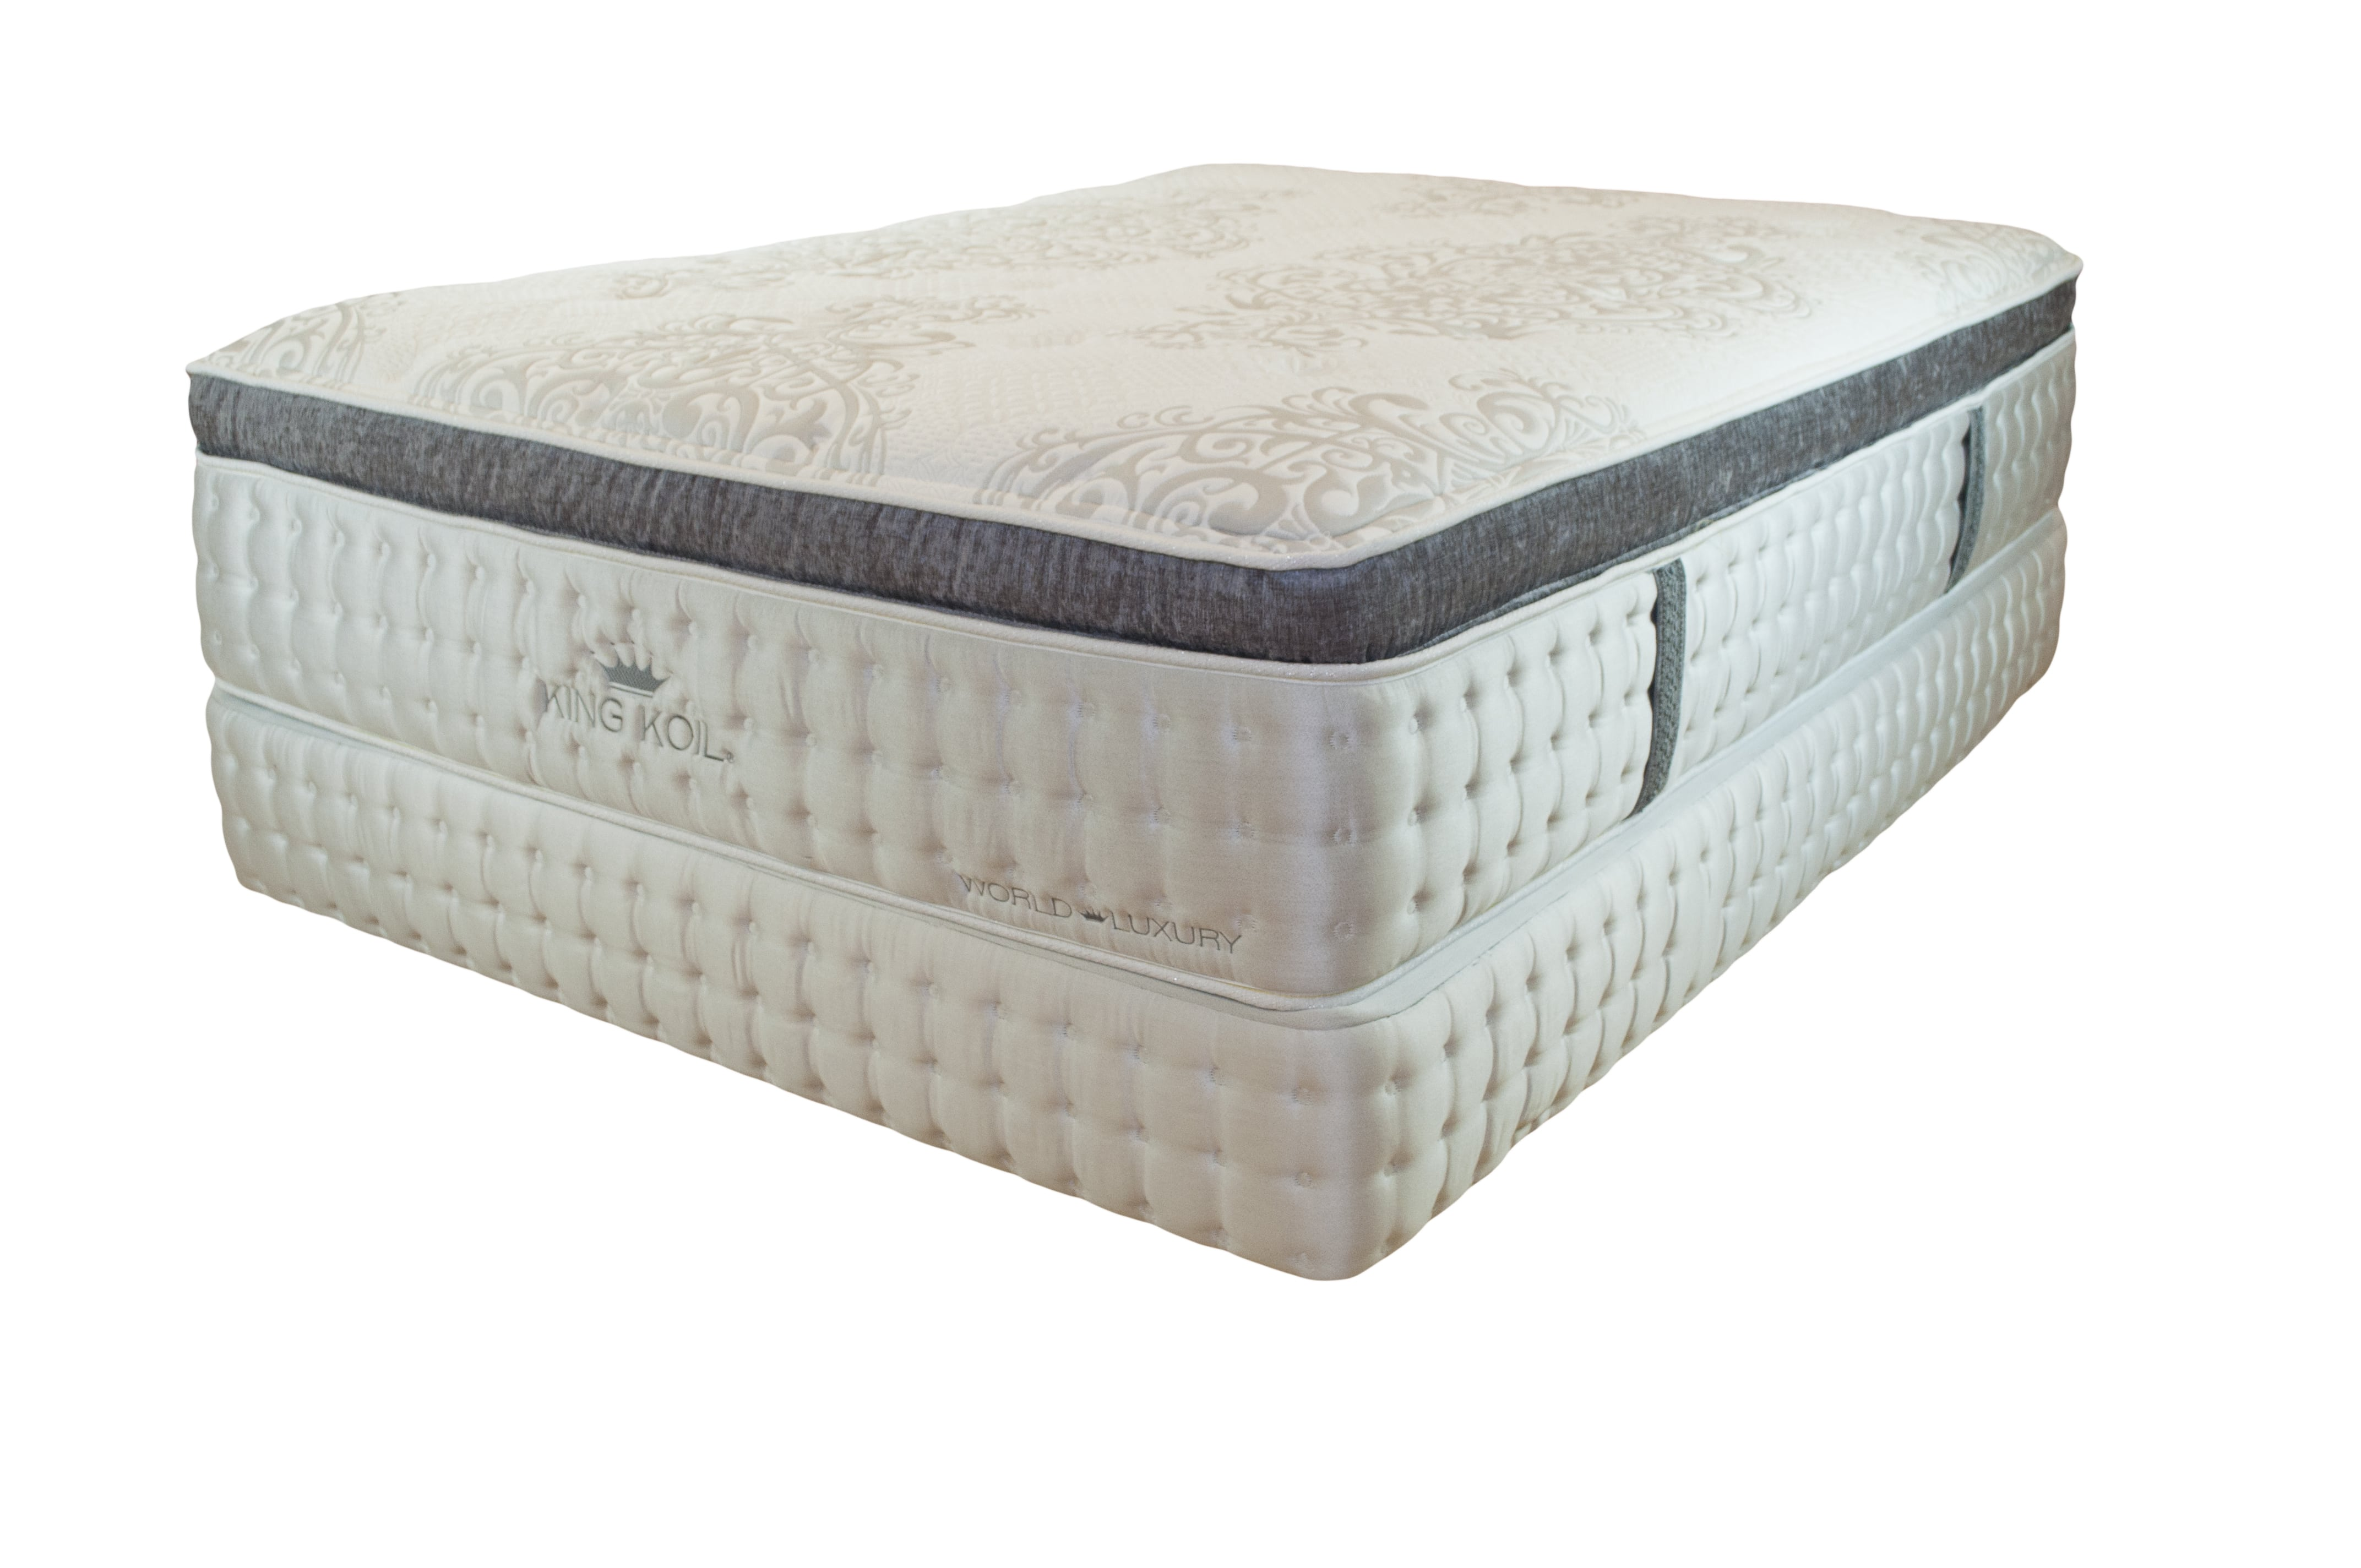 Bedarraet Mattress Store Nothing But Beds